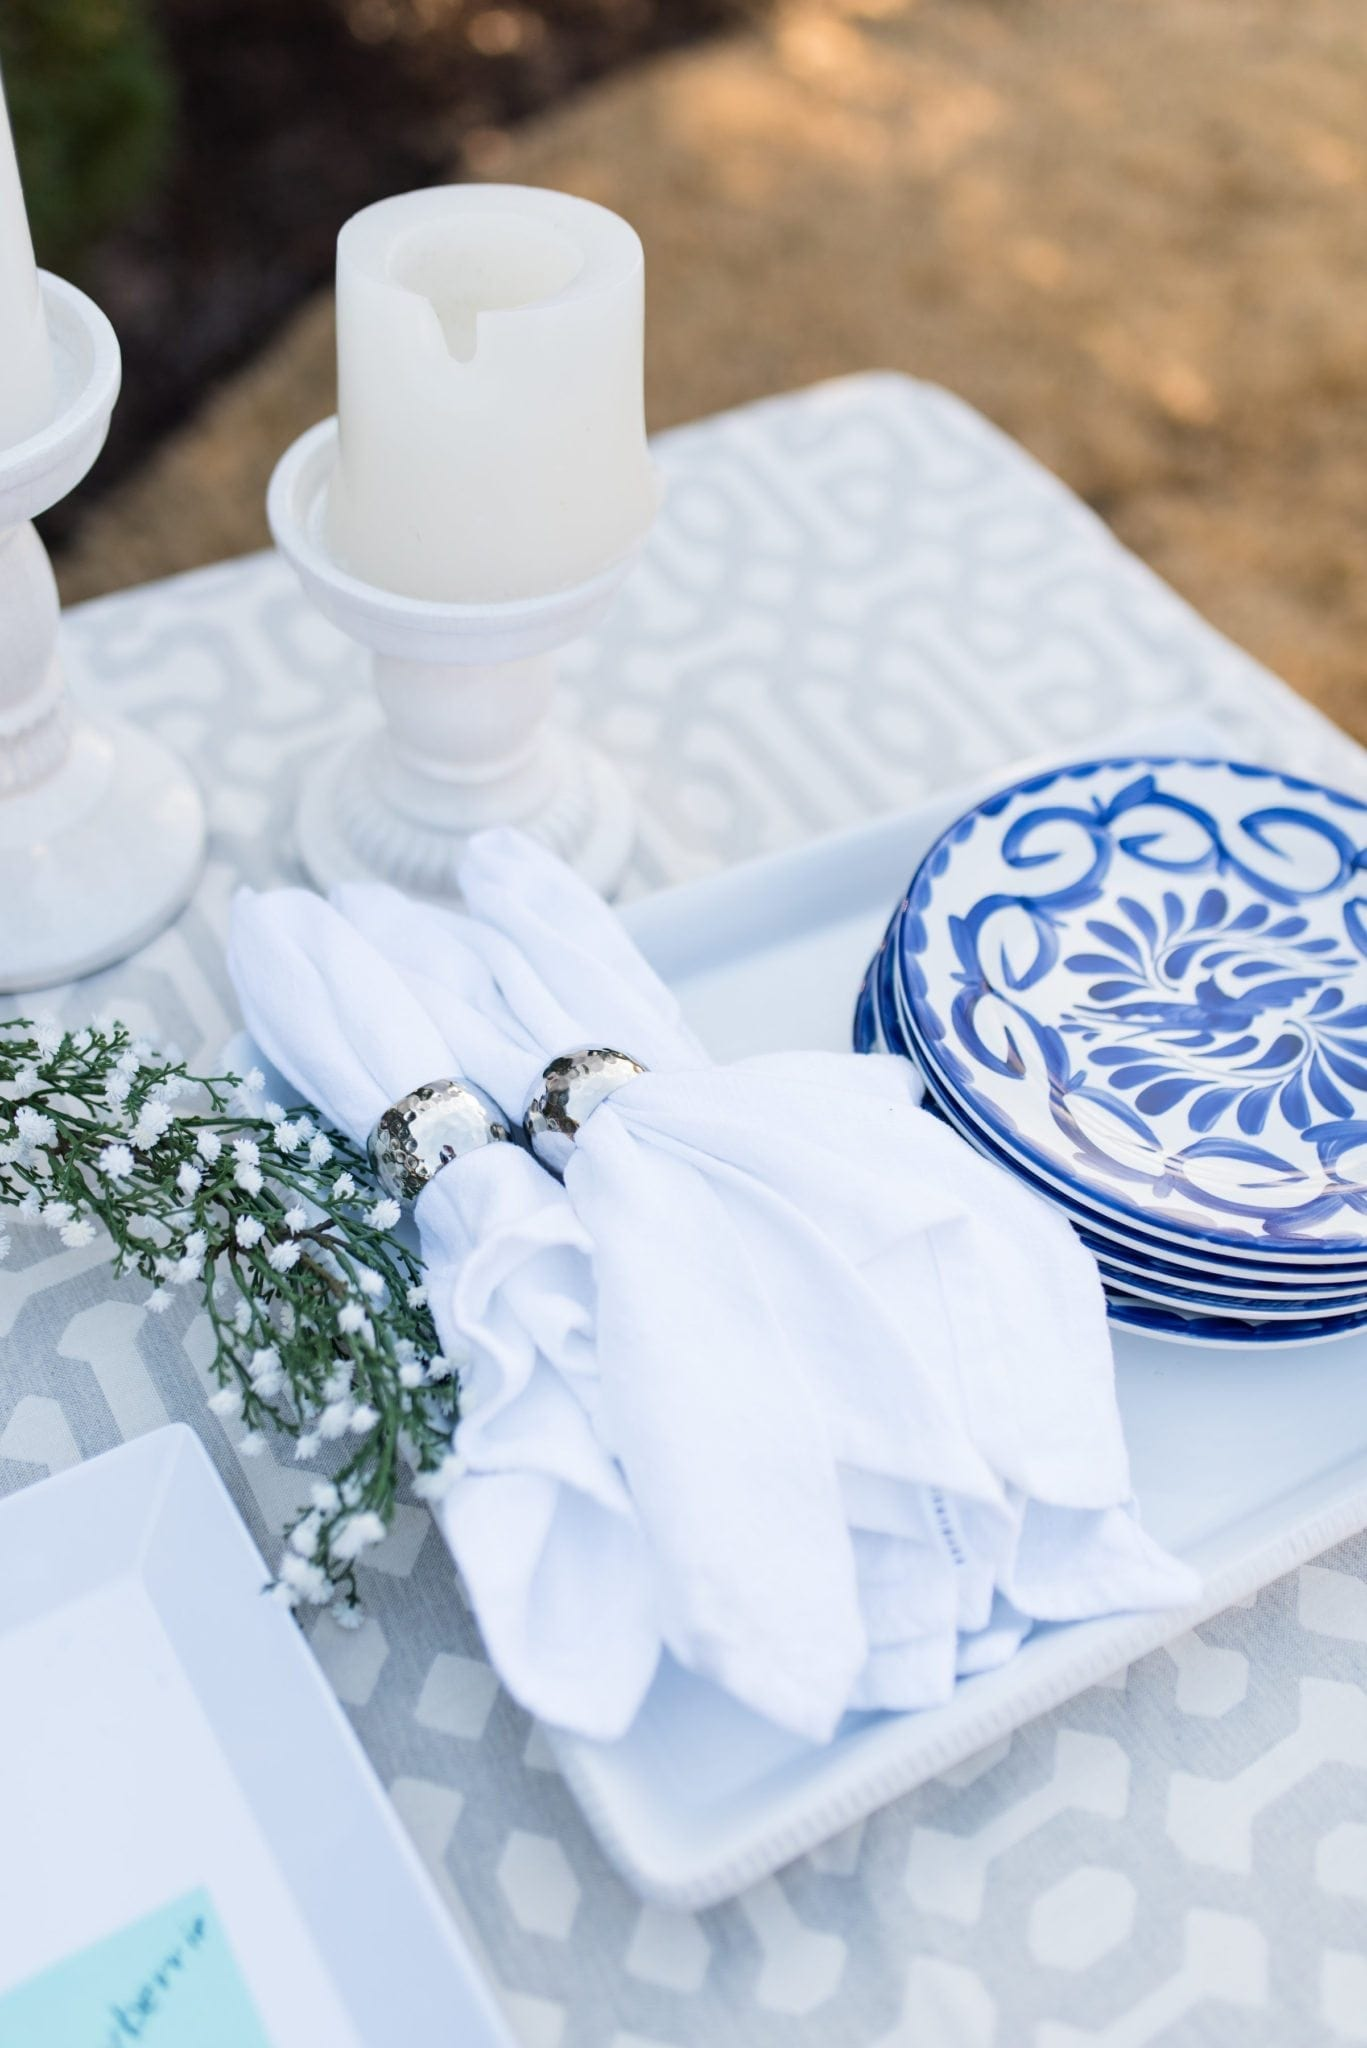 Easy and simple party set up. All white and blue table setting with pretty blue and white plates, white linens and babies breath.